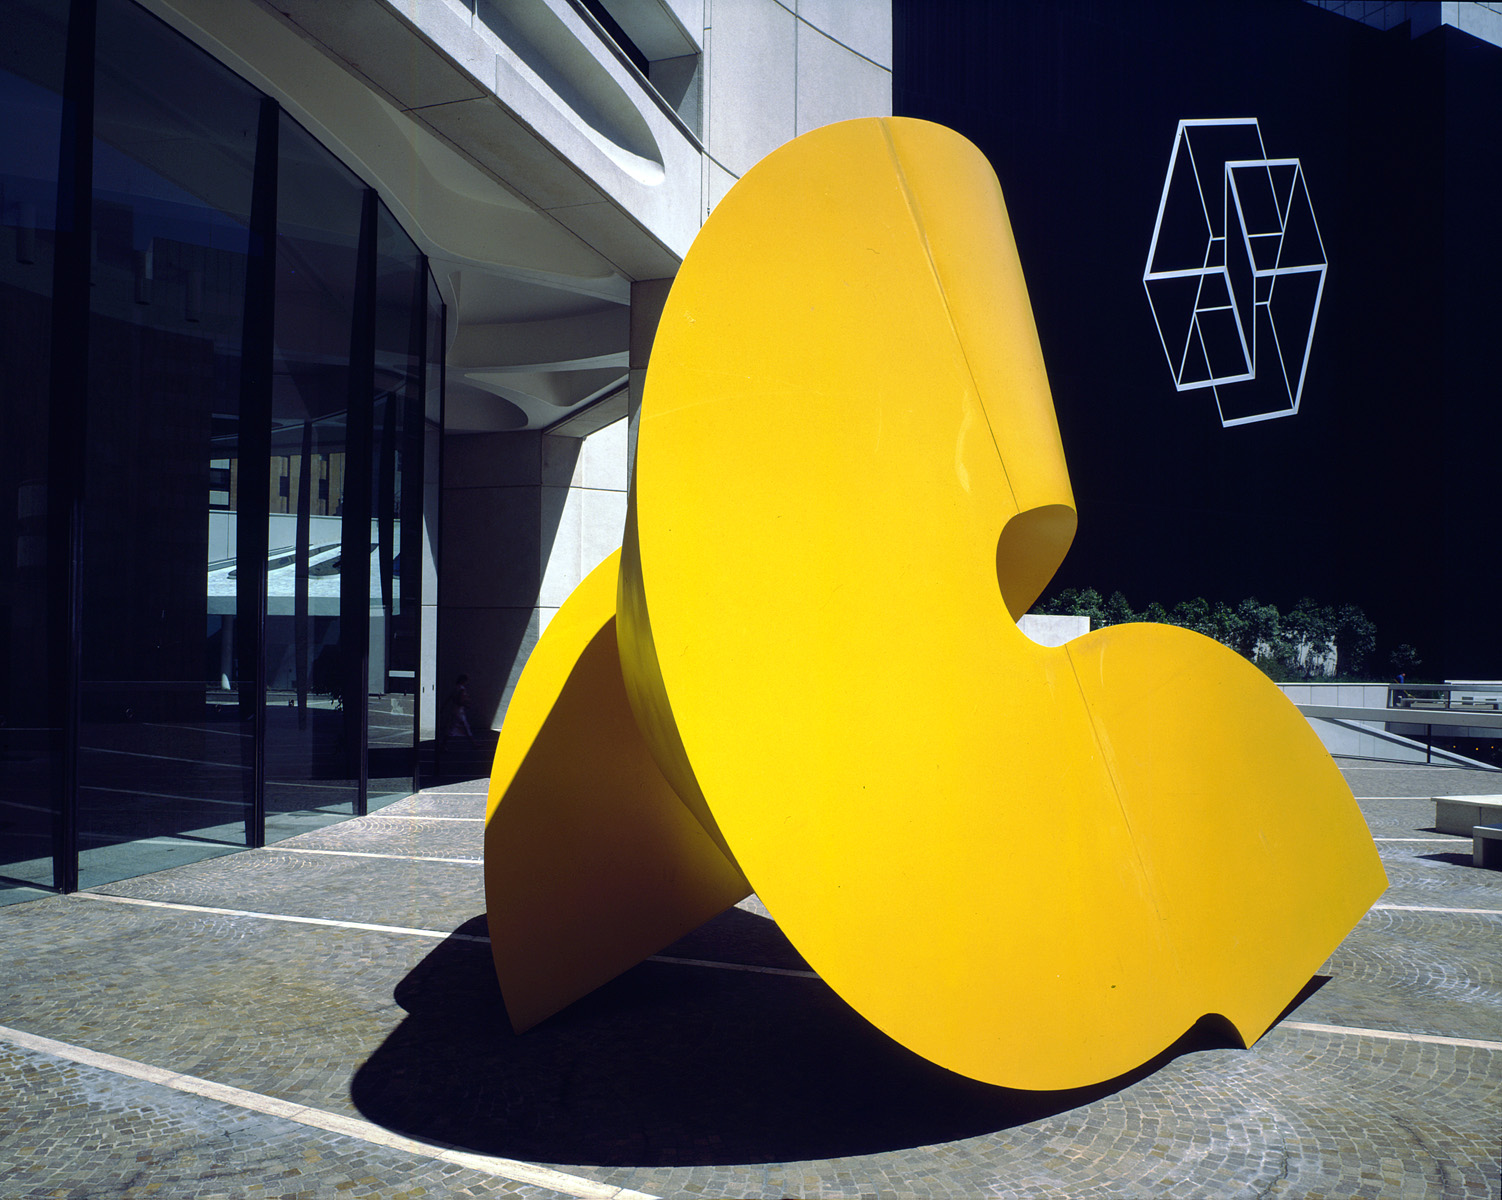 Albers structural installation 'Wrestling' behind a Charles Perry scupture on MLC's plaza